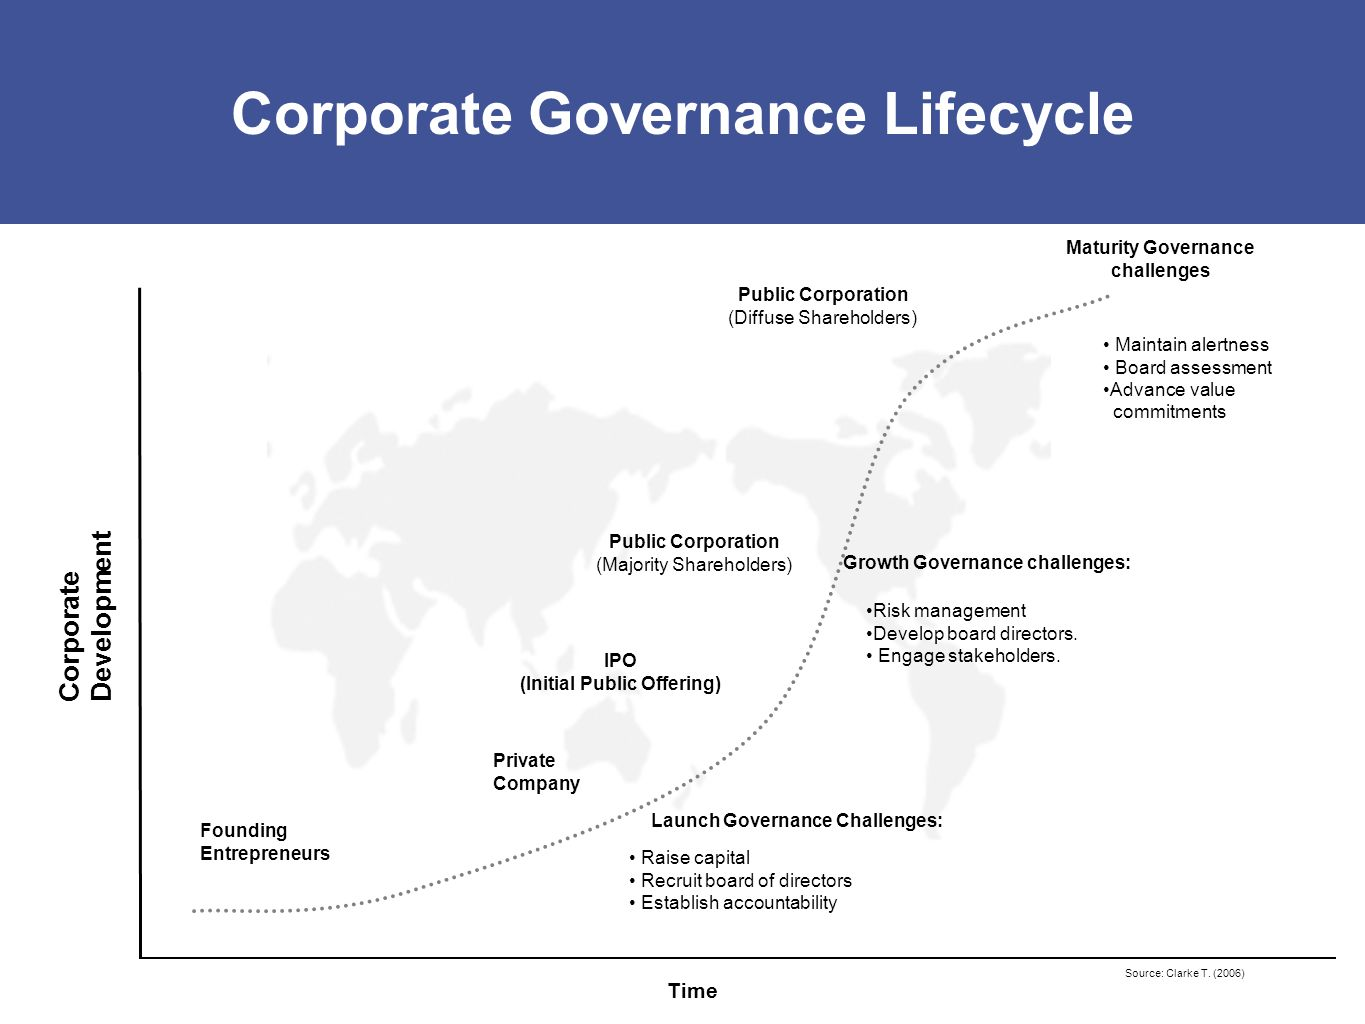 Corporate Governance Lifecycle